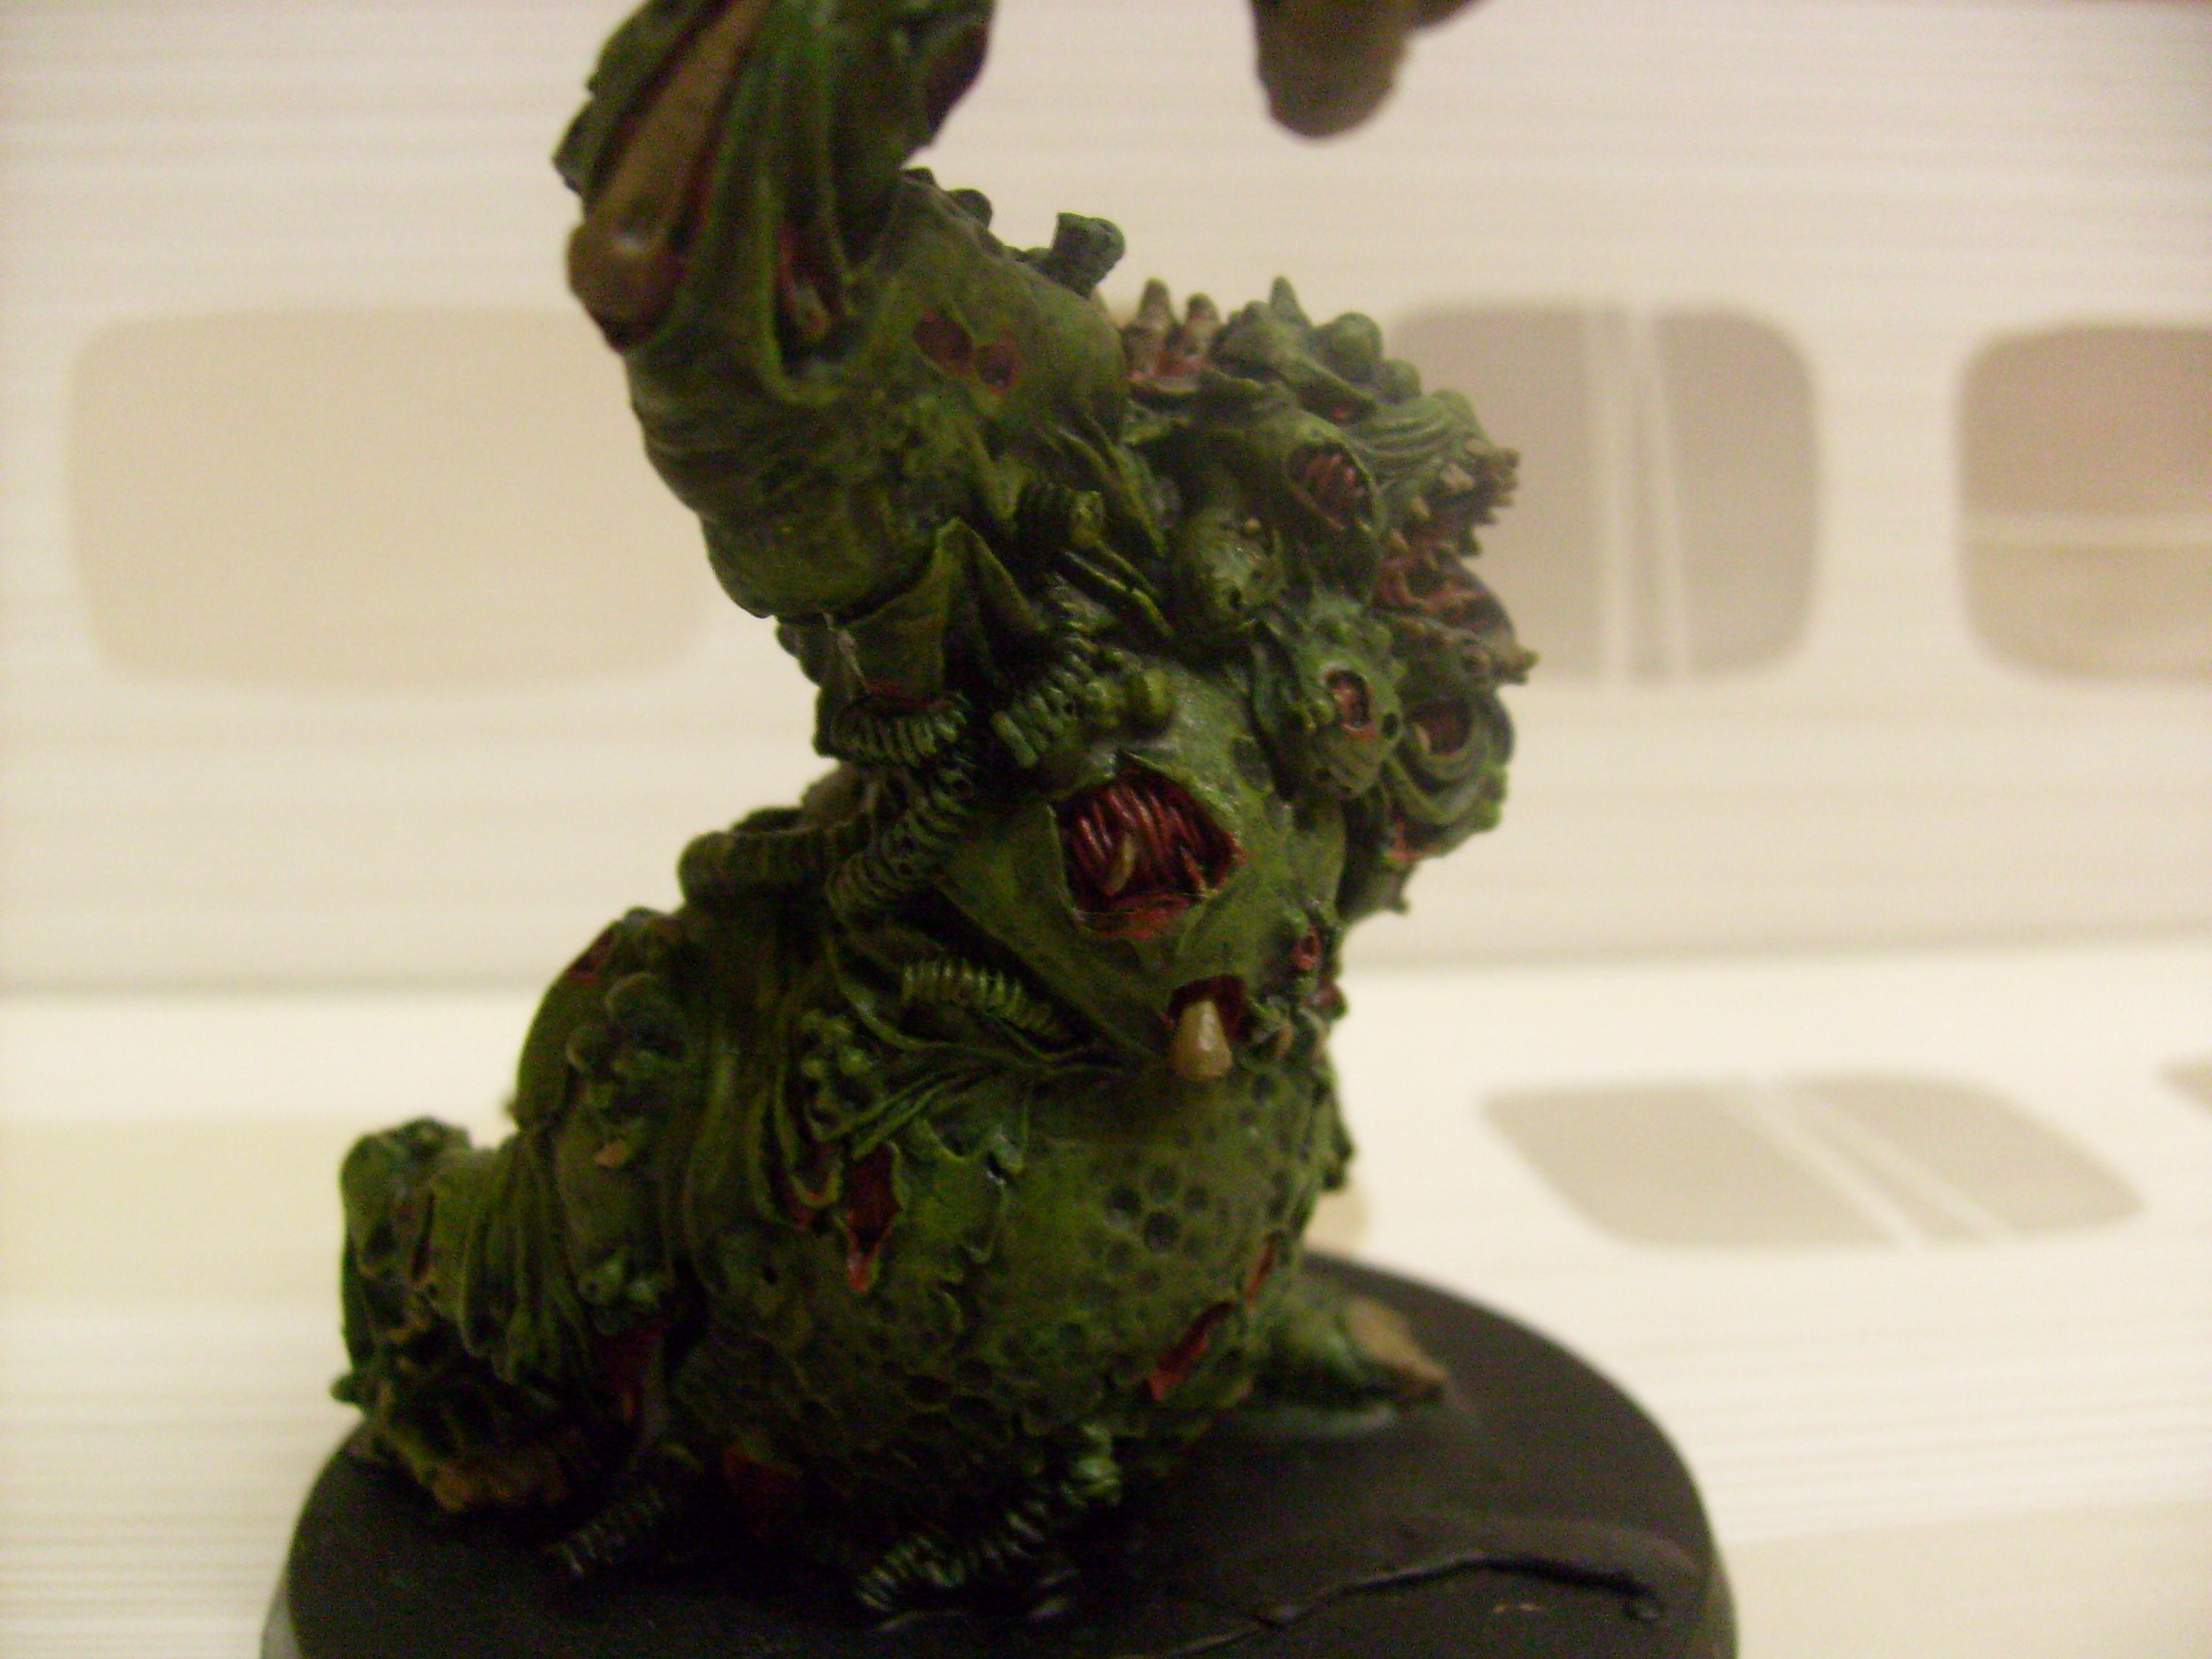 Chaos, Greater Daemon Of Nurgle, Gross, Icky, Nurgle